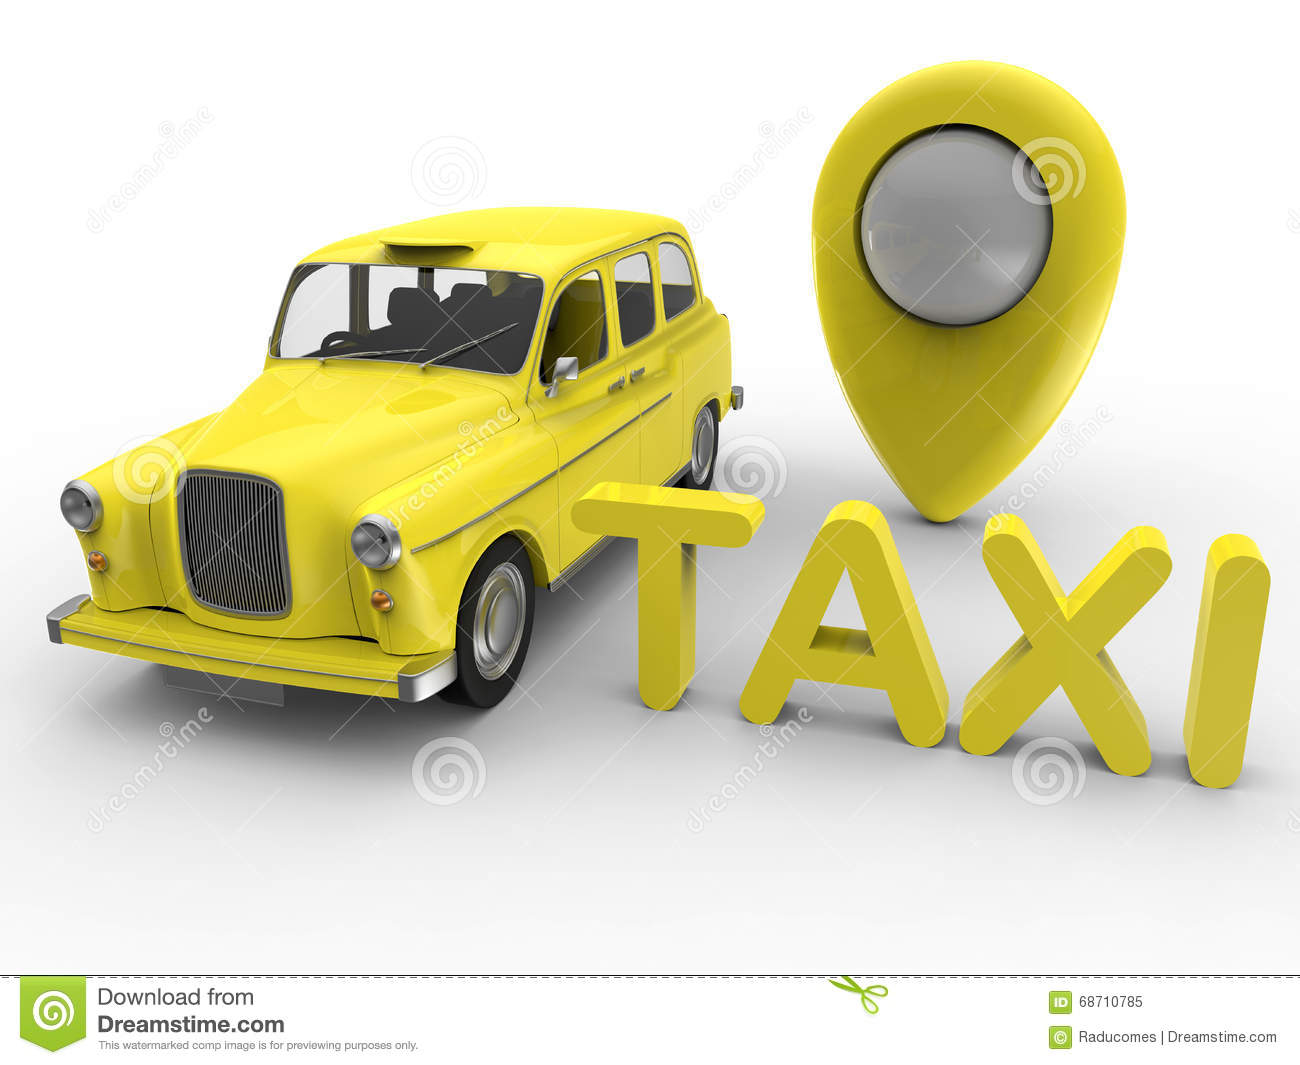 Taxi GPS service stock illustration  Illustration of business - 68710785